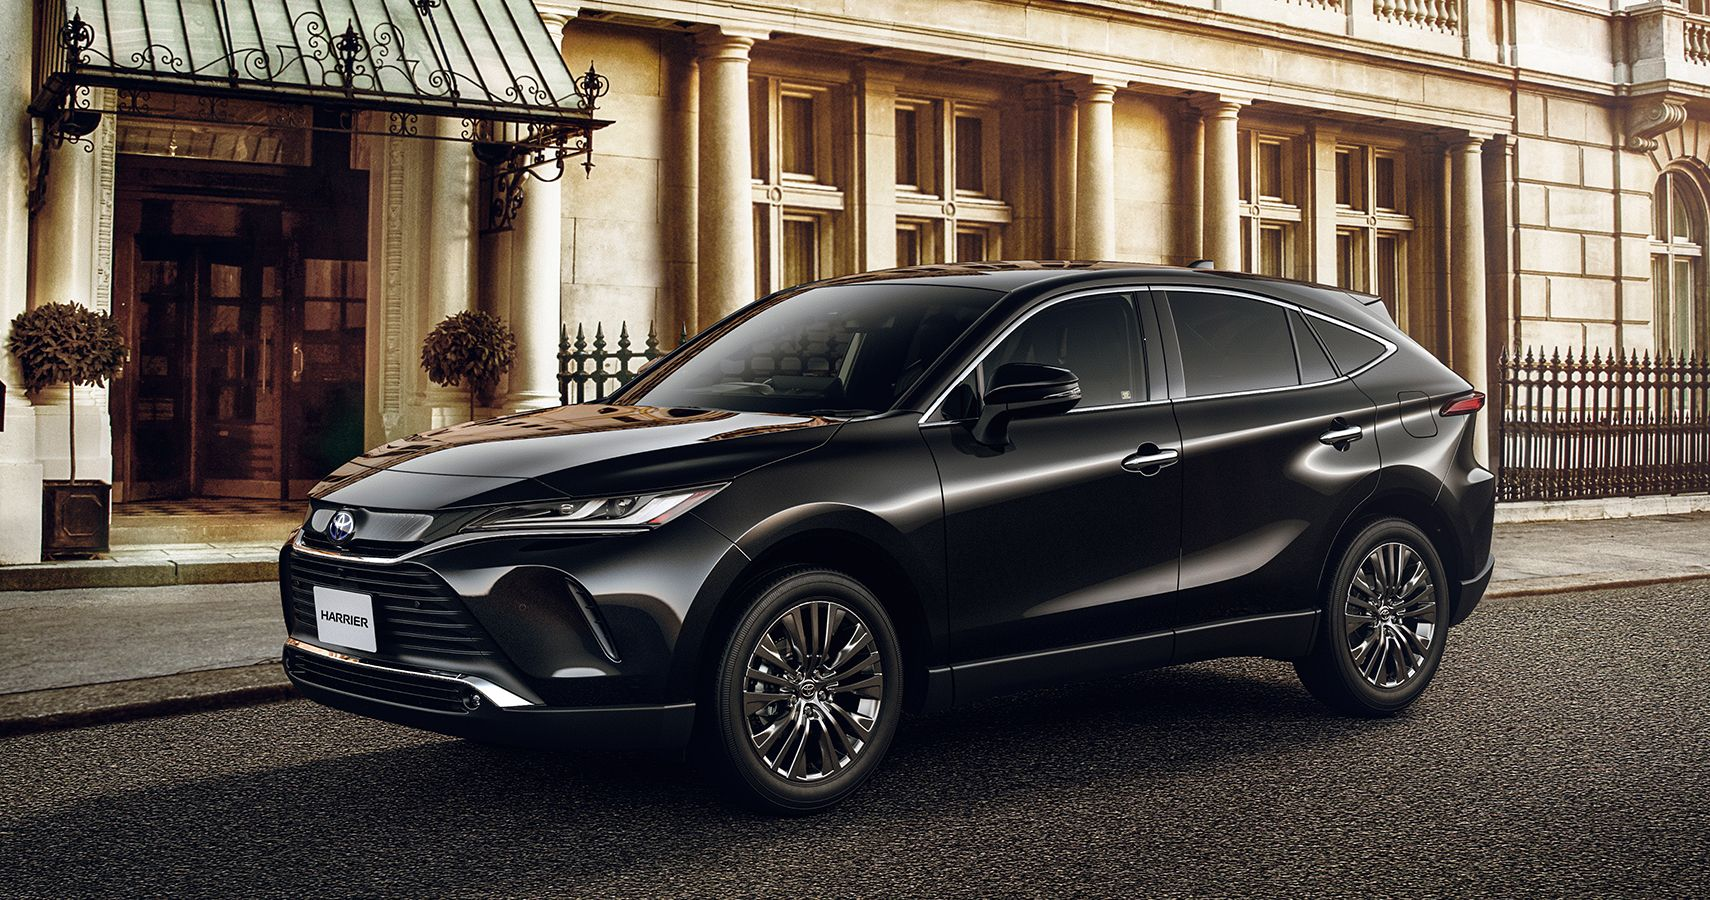 all-new 2021 toyota harrier to arrive in japan this june